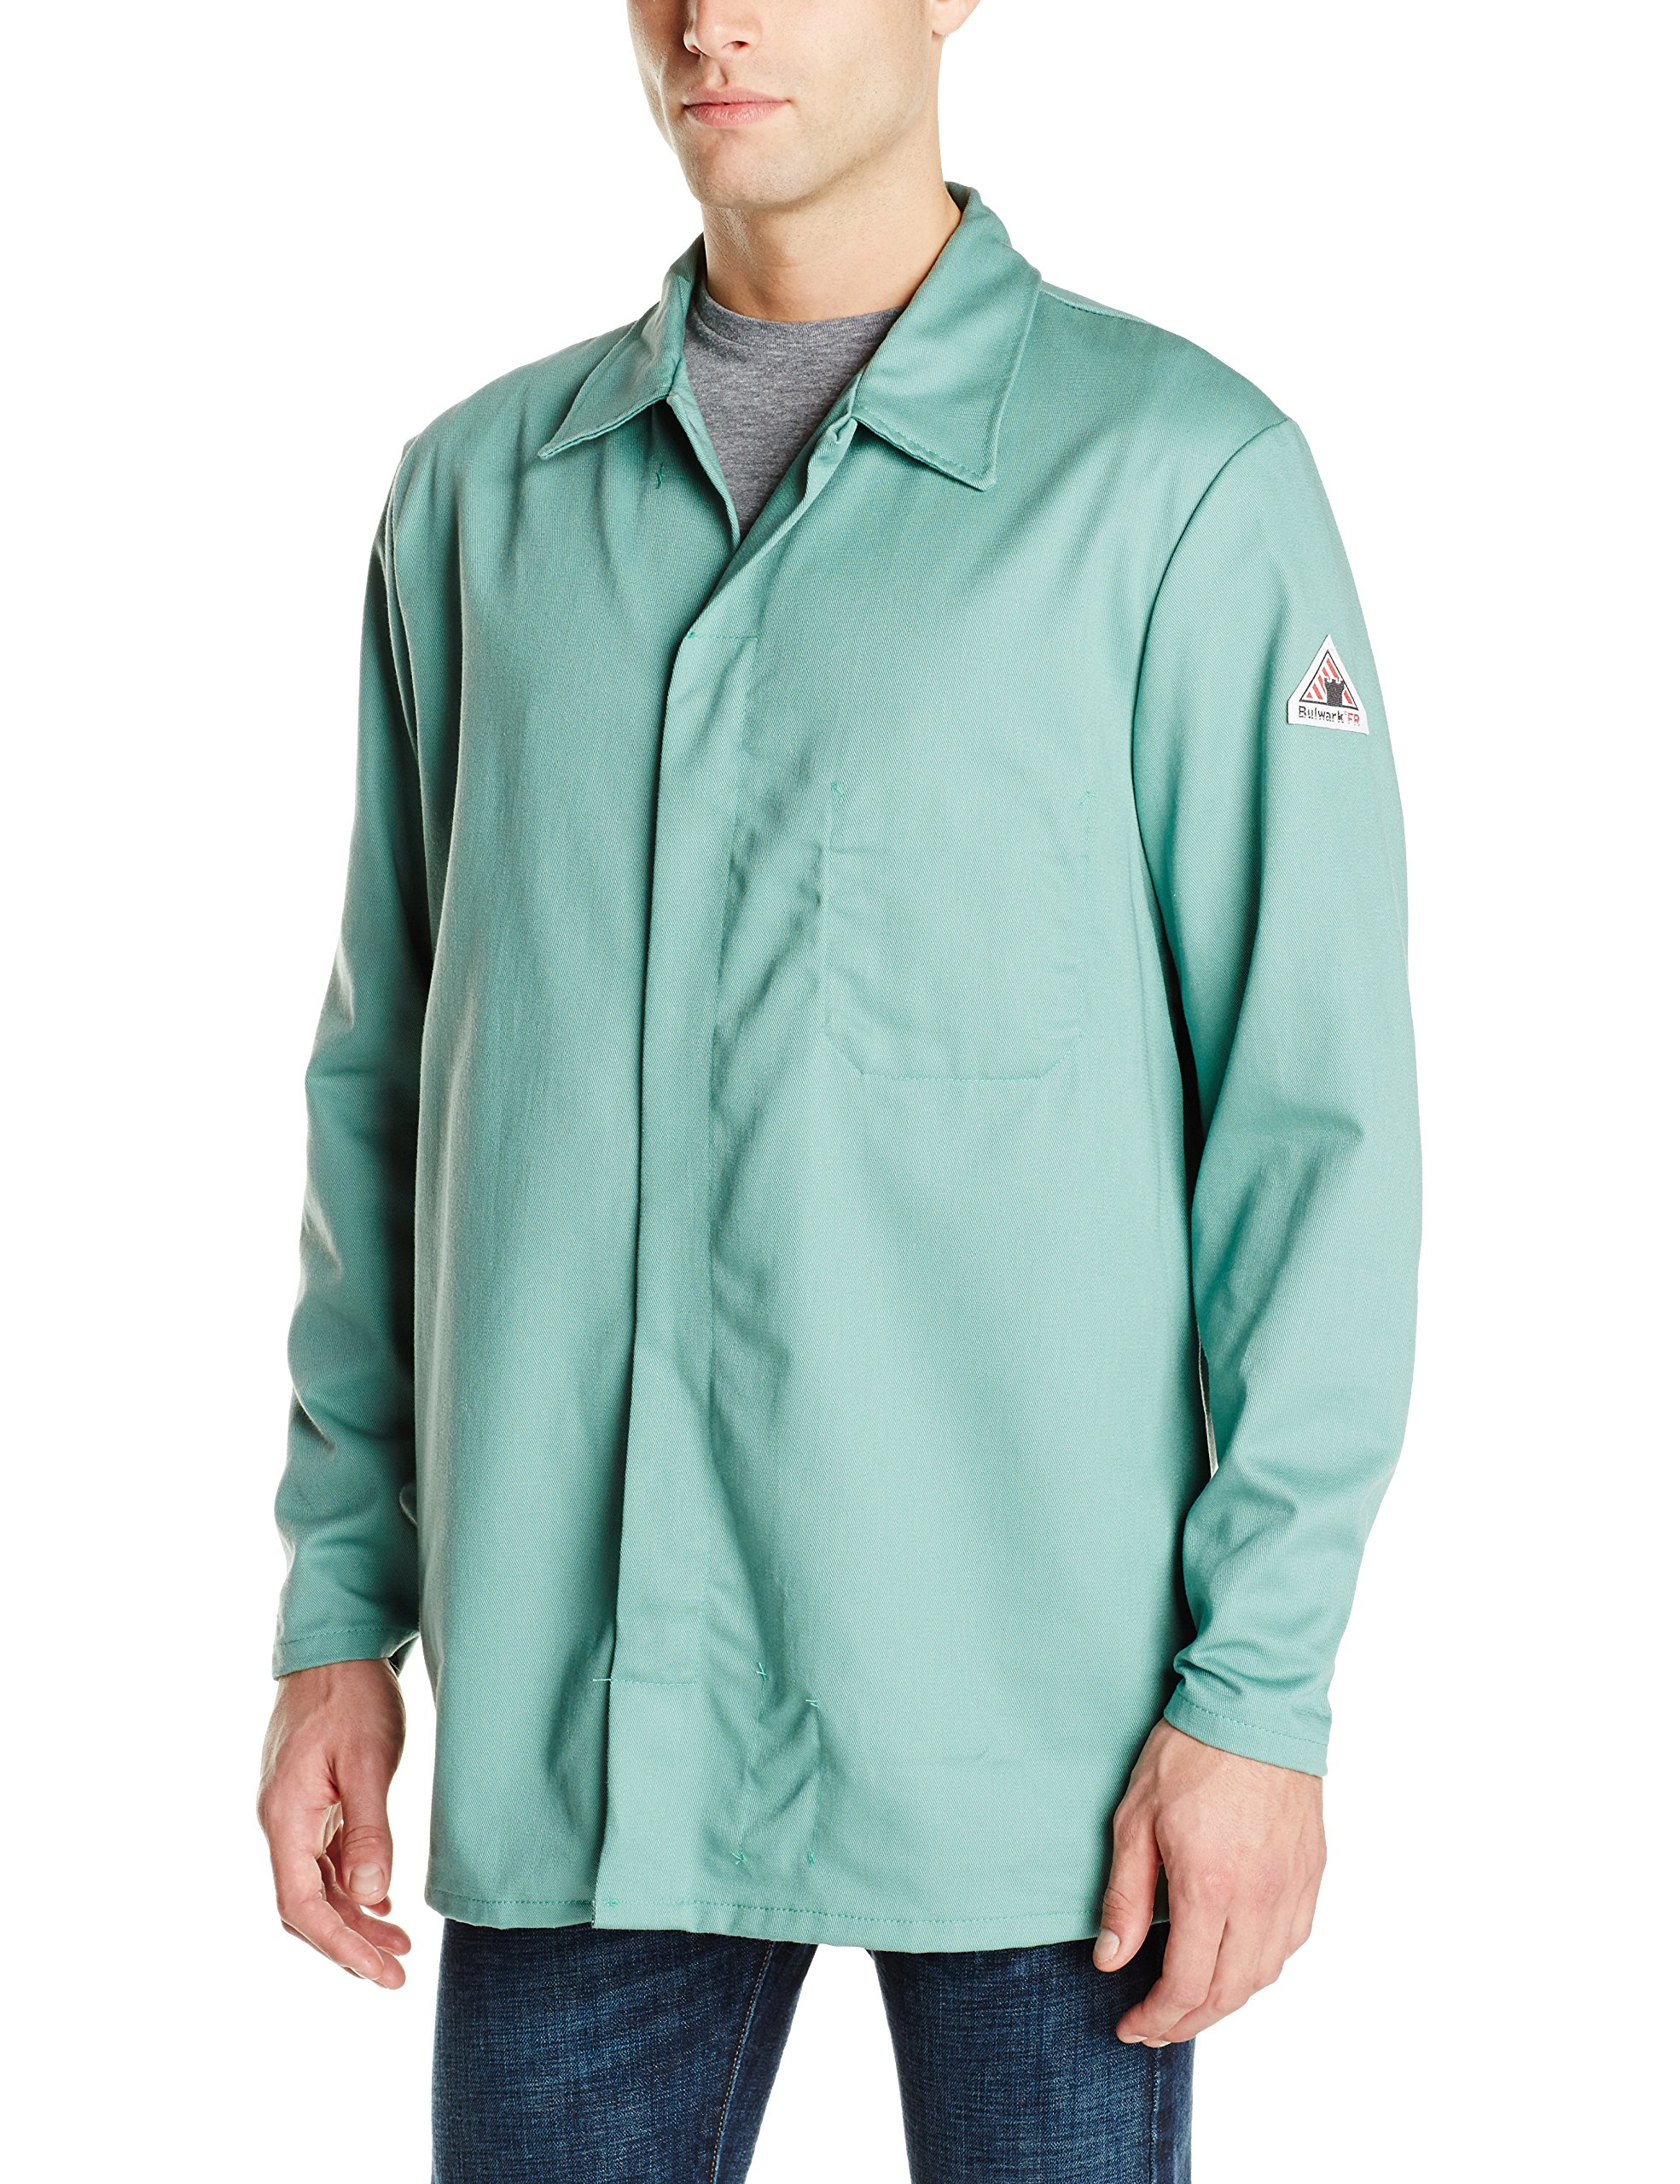 Bulwark Flame Resistant 9 oz Twill Cotton Excel FR Regular Work Coat with Top Stitched Collar, Visual Green, Small